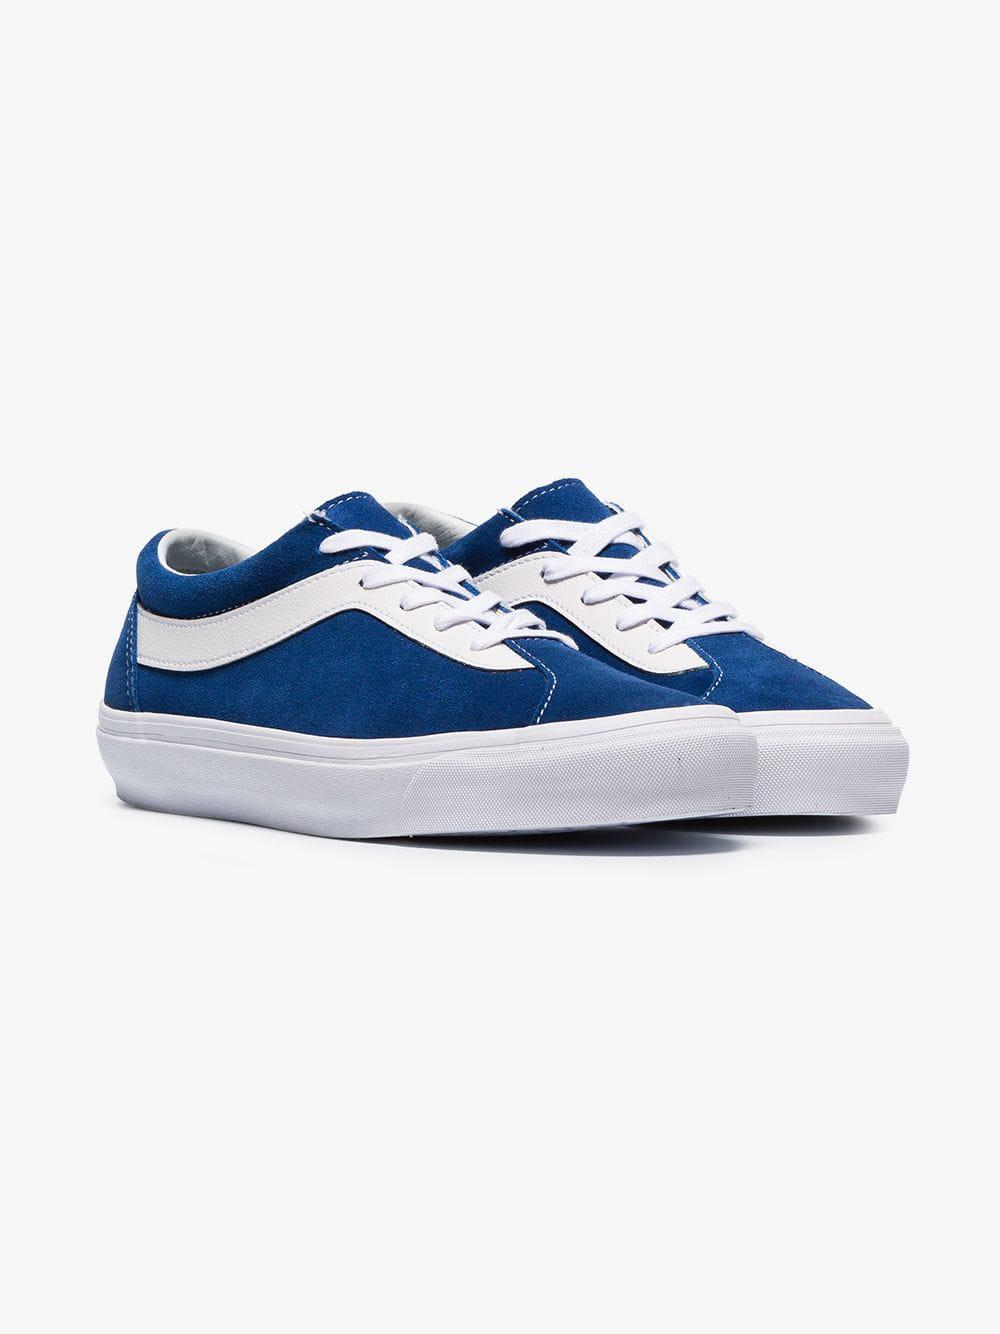 b75355817d Vans - Blue And White Bold Leather And Suede Sneakers for Men - Lyst. View  fullscreen